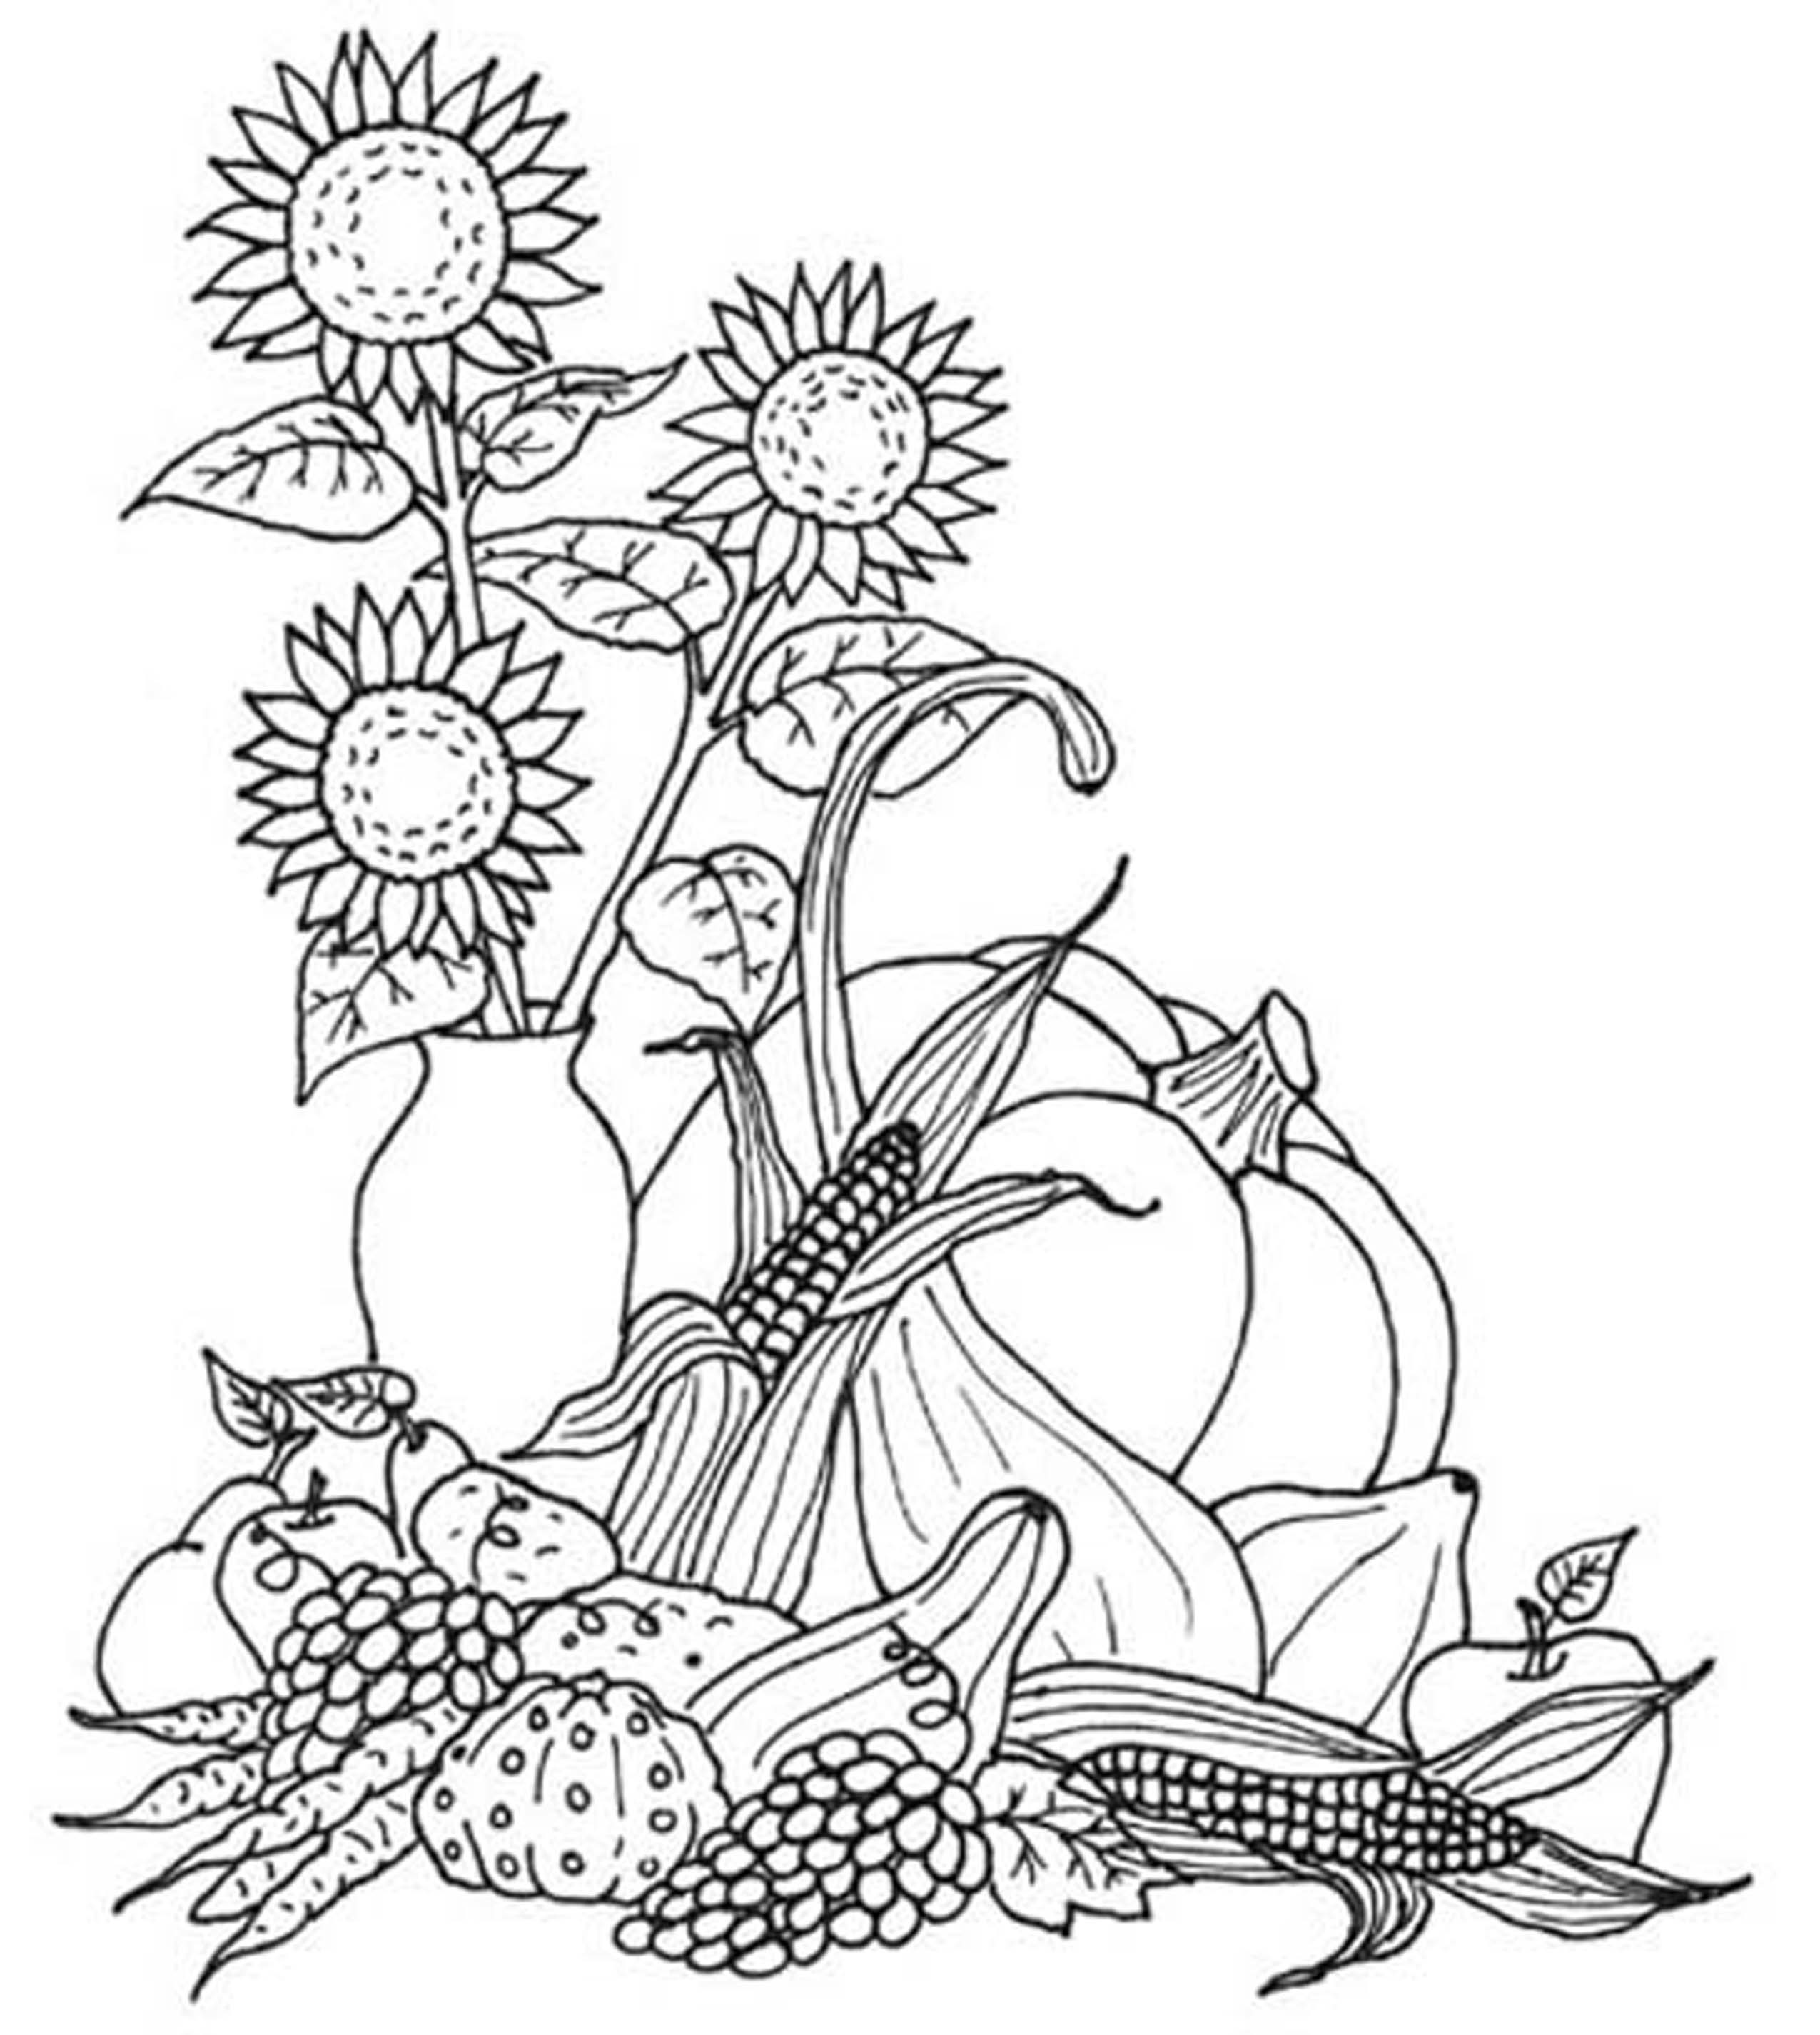 coloring fall pictures free printable fall coloring pages for kids best fall coloring pictures